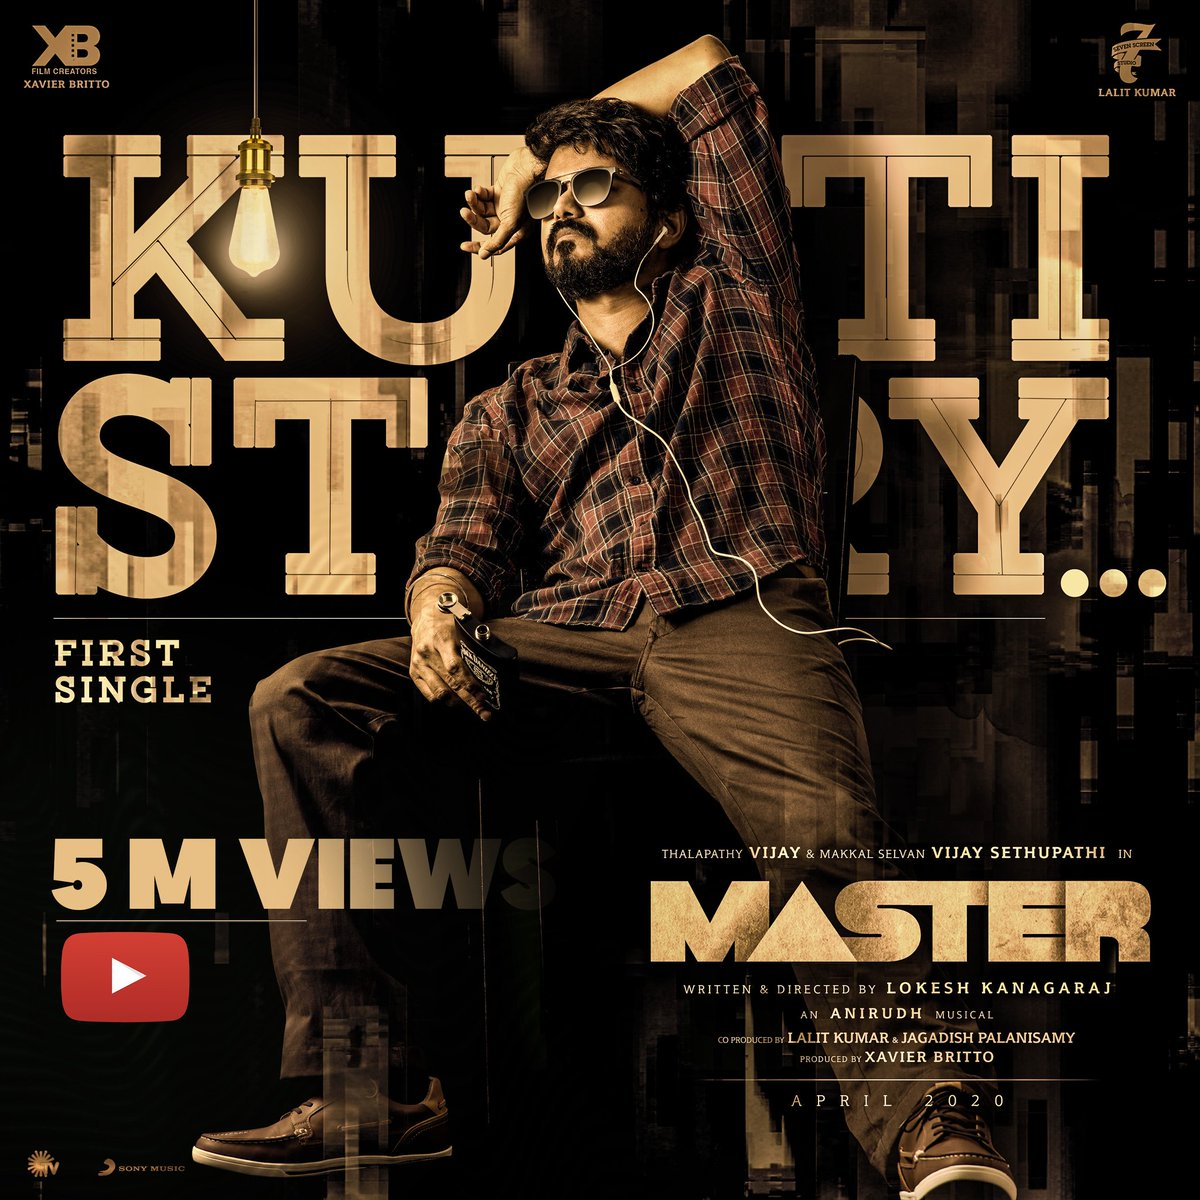 It's raging through the Internet like we would have guessed it would! 😎 What a kutti story it has been so far! 💥  #OruKuttiKathai #KuttiStory #MasterSingle #Master